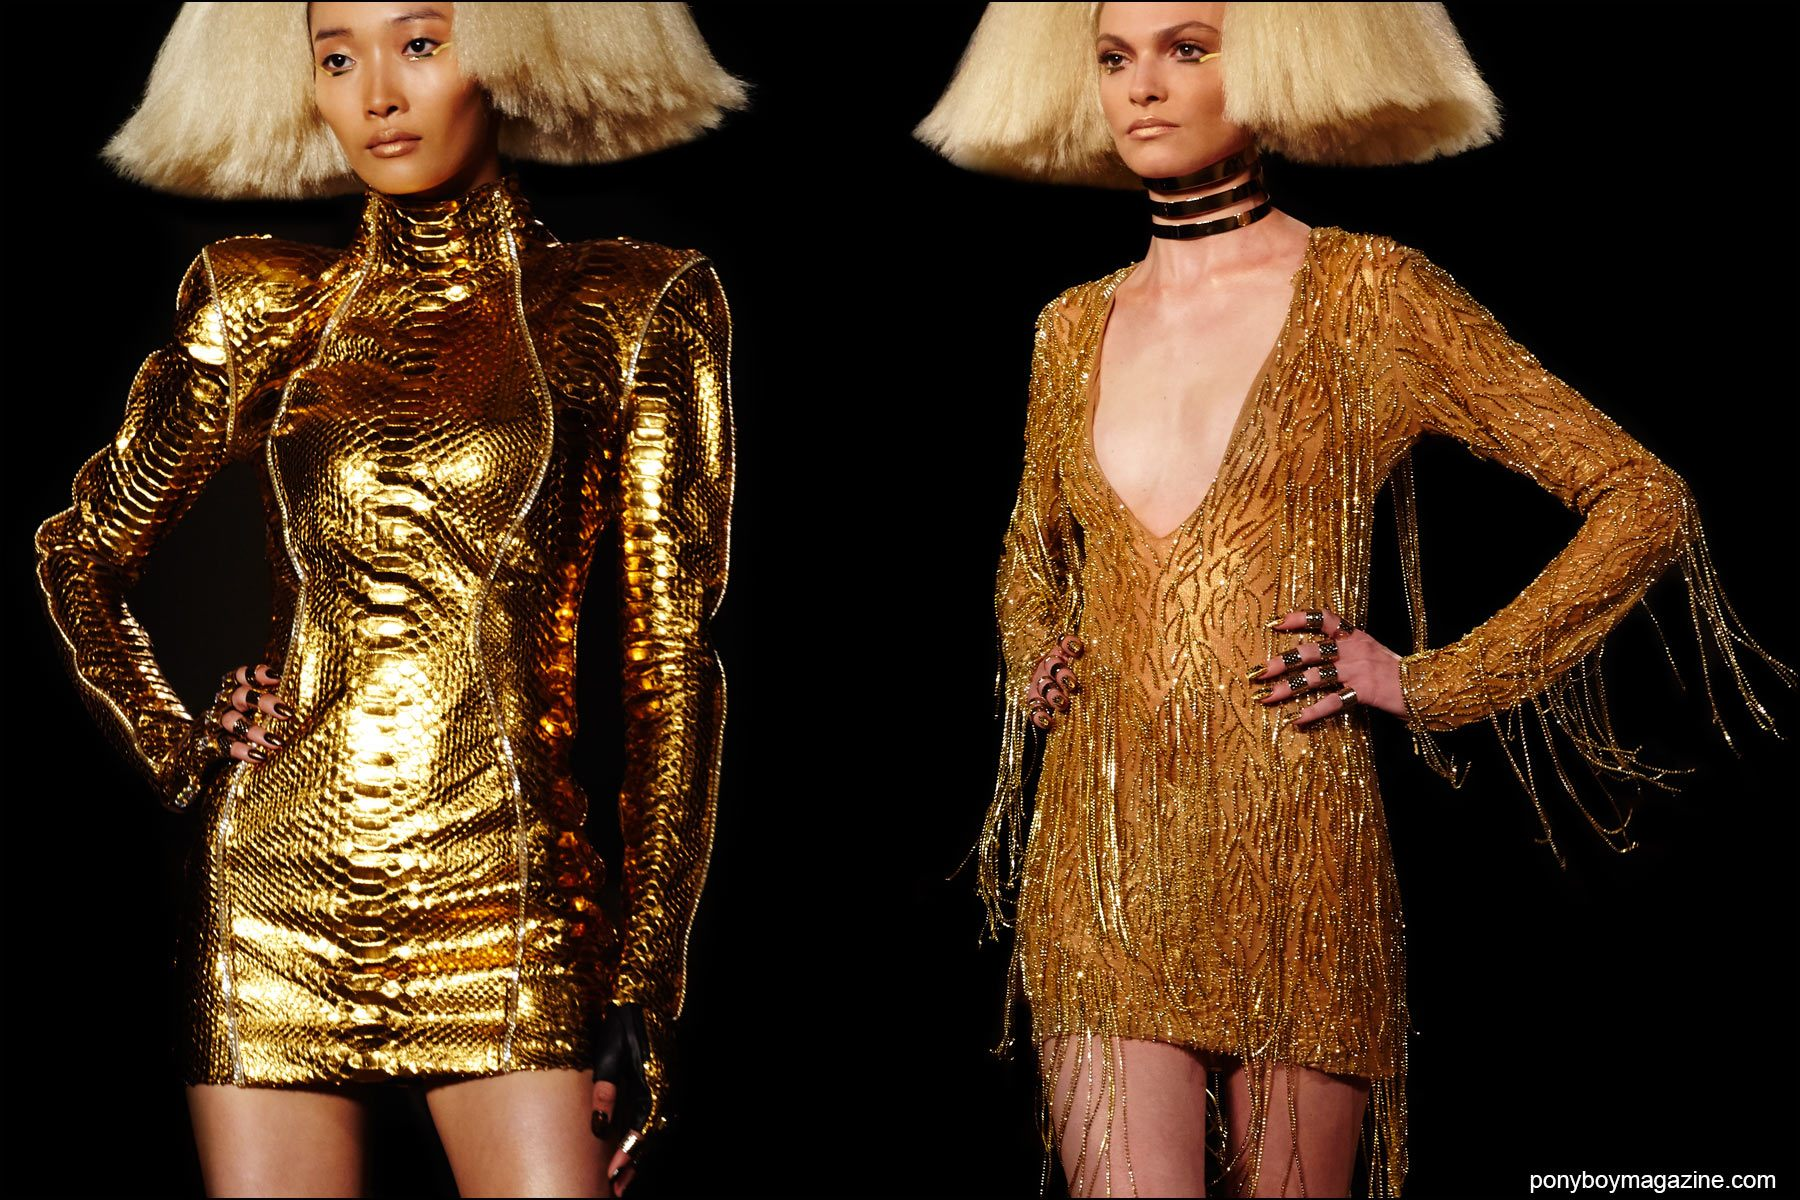 Gold mini dresses, on the runway at the Blonds S/S16 show. Photography by Alexander Thompson for Ponyboy magazine NY.